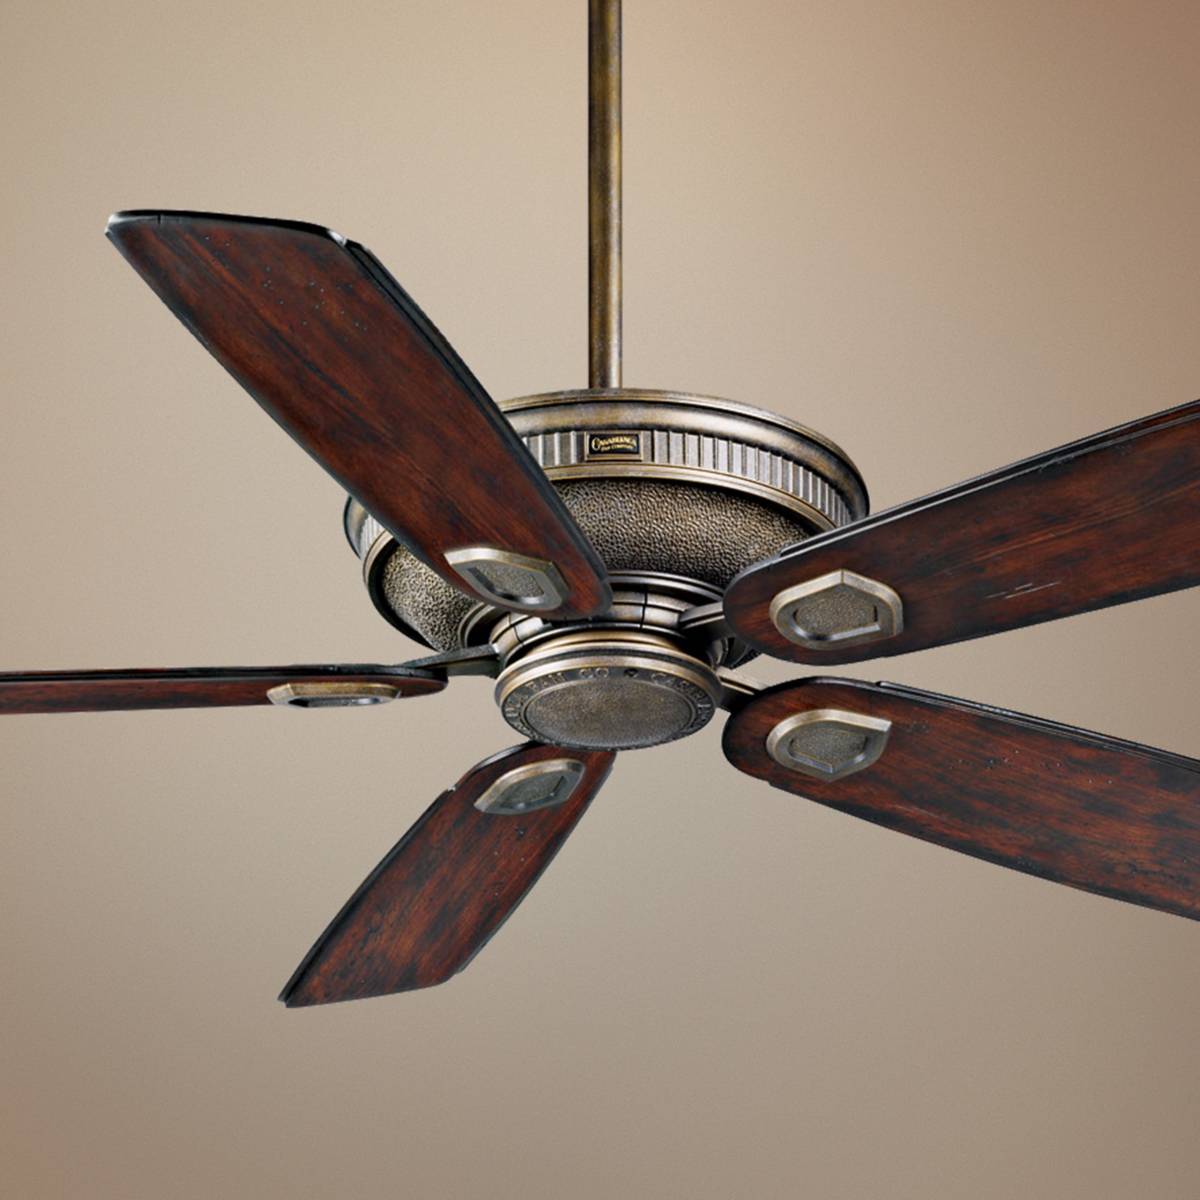 Large Ceiling Fans 60 Inch Span And Larger Page 4